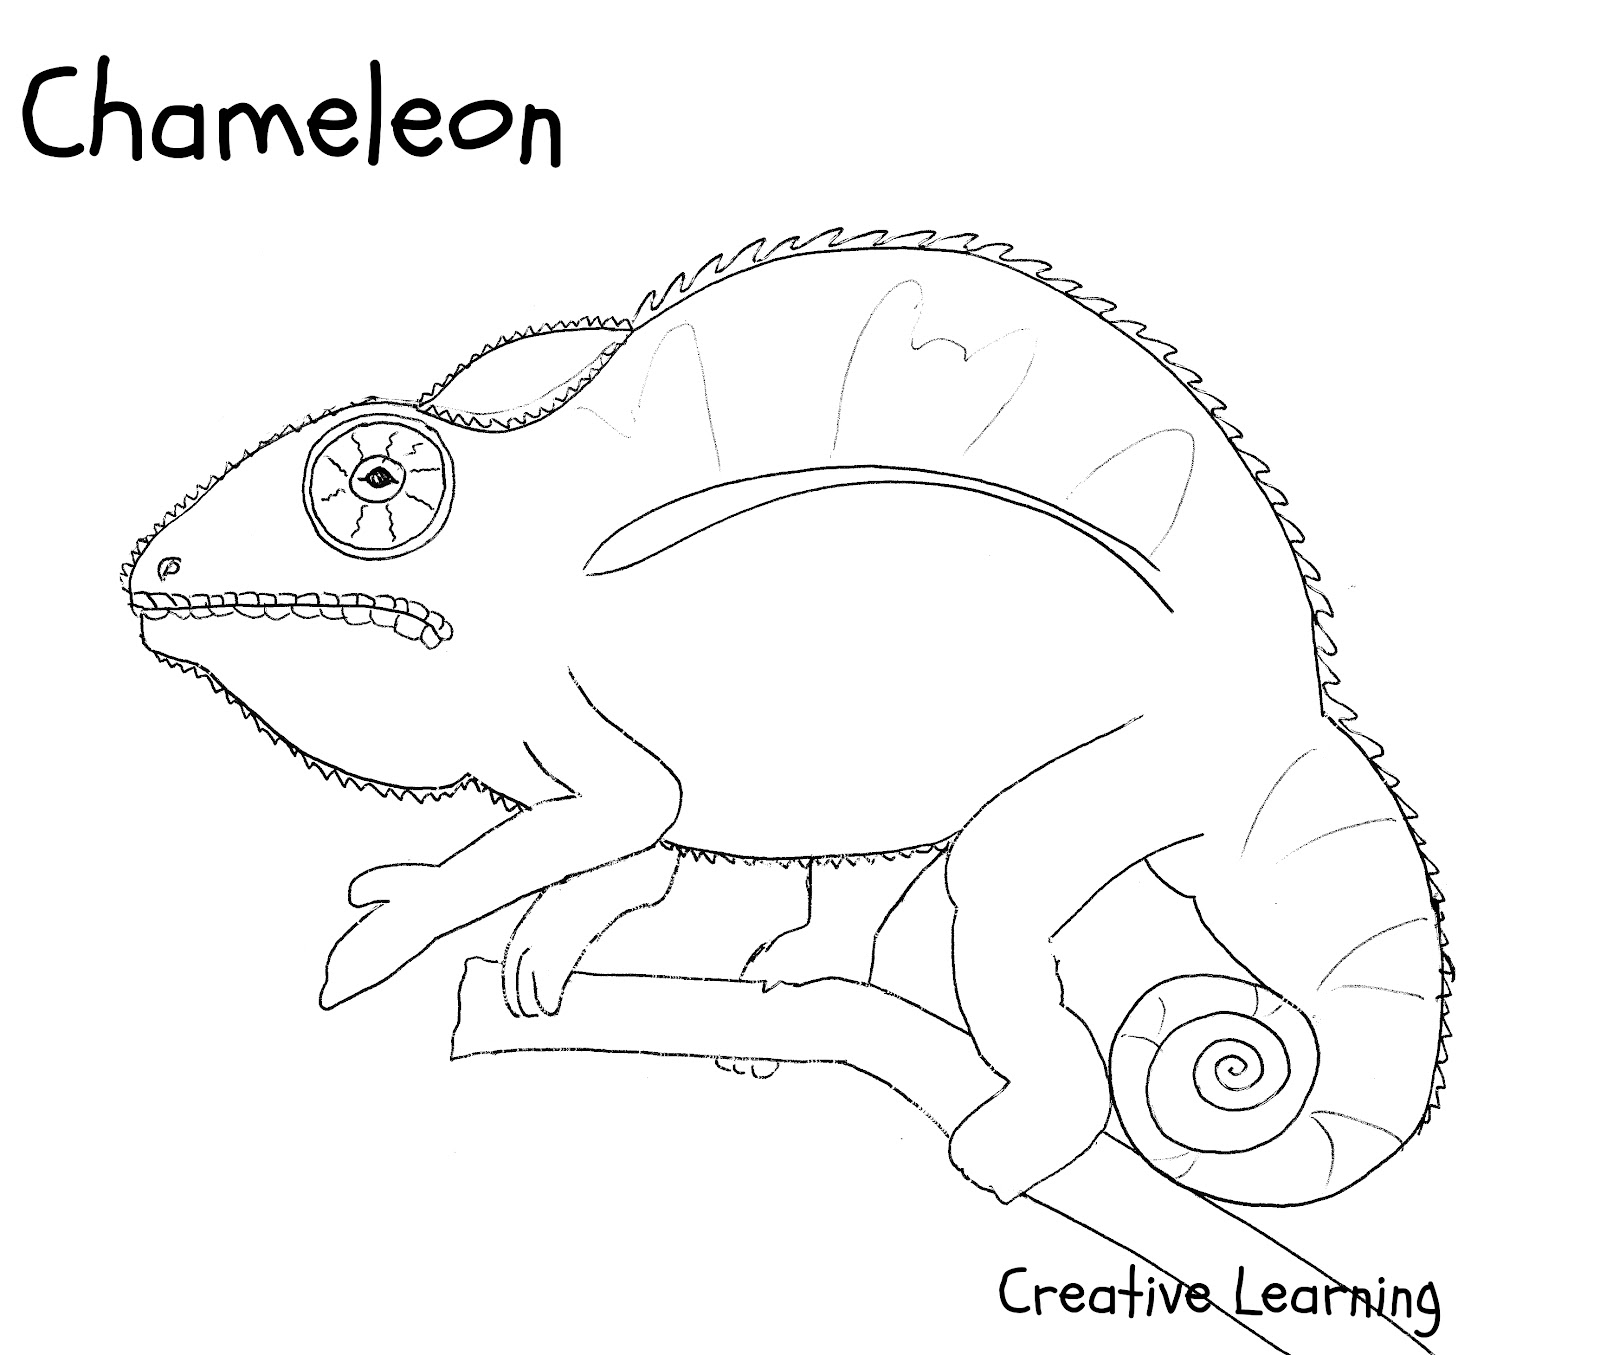 chameleon coloring pages - photo#32